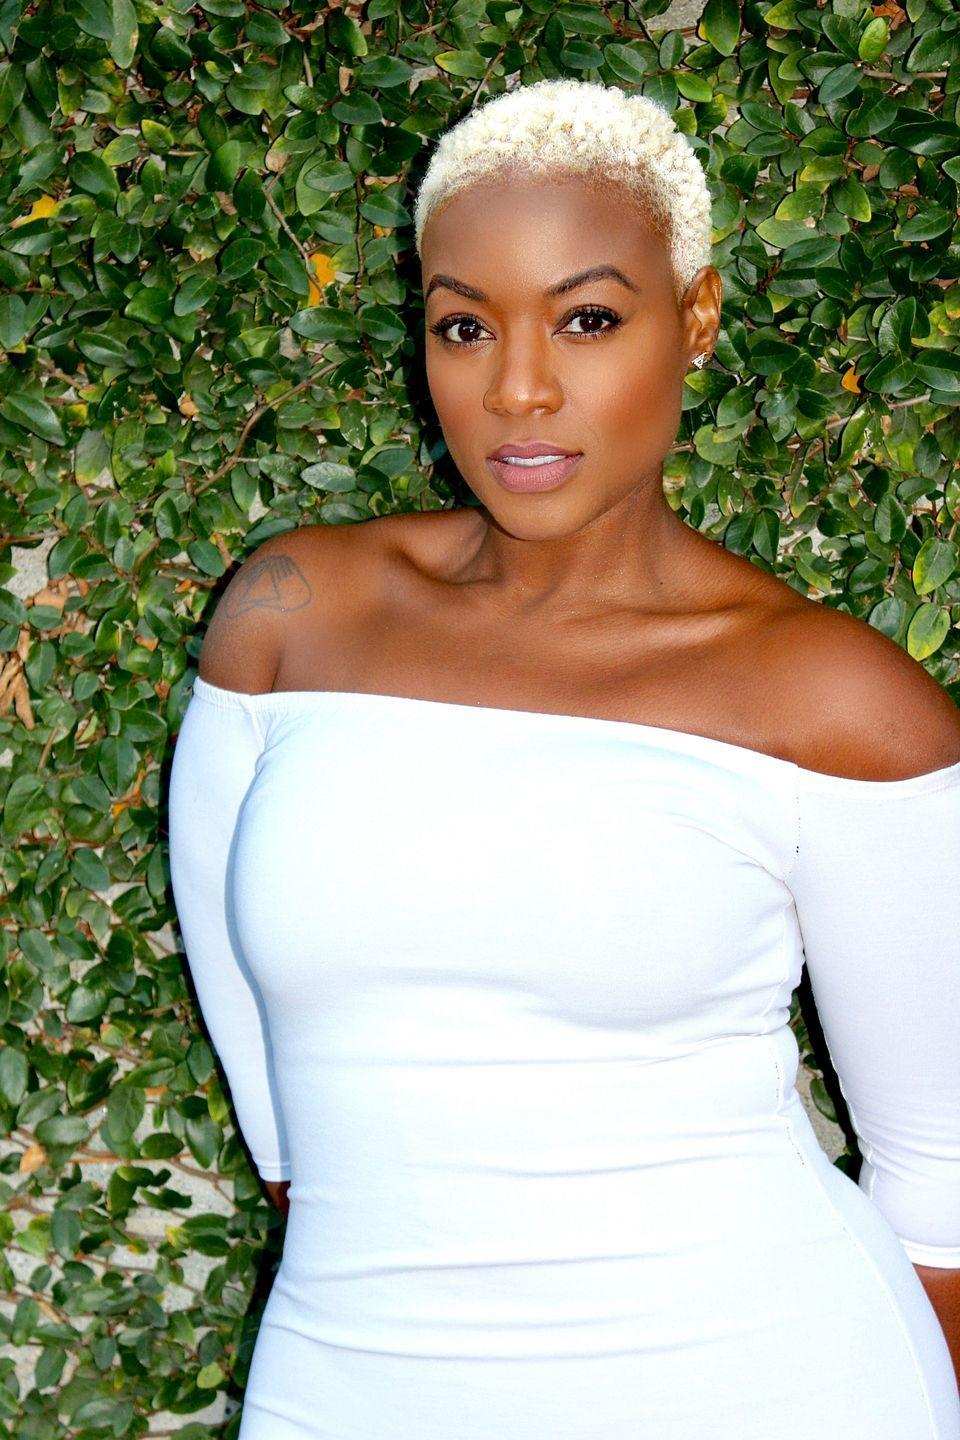 """<p>Emmy-winning actress and singer <a href=""""http://thegalaxymethod.com/"""" rel=""""nofollow noopener"""" target=""""_blank"""" data-ylk=""""slk:Patrice Covington"""" class=""""link rapid-noclick-resp"""">Patrice Covington </a>rocks a short blonde to perfection. """"I keep my blonde moisturized with the old school <a href=""""https://www.amazon.com/Dudleys-Moisture-Retainer-Unisex-Ounce/dp/B000WNLRYS?tag=syn-yahoo-20&ascsubtag=%5Bartid%7C10072.g.34727550%5Bsrc%7Cyahoo-us"""" rel=""""nofollow noopener"""" target=""""_blank"""" data-ylk=""""slk:DUDLEYS PCA Moisturizer"""" class=""""link rapid-noclick-resp"""">DUDLEYS PCA Moisturizer</a> which helps counteract the dryness from the bleach. I also use <a href=""""https://cremeofnature.com/products/pure-honey/hair-care/leave-in-conditioner/"""" rel=""""nofollow noopener"""" target=""""_blank"""" data-ylk=""""slk:Creme of Nature Pure Honey Break Up Breakage"""" class=""""link rapid-noclick-resp"""">Creme of Nature Pure Honey Break Up Breakage</a> as a leave-in conditioner.""""</p>"""